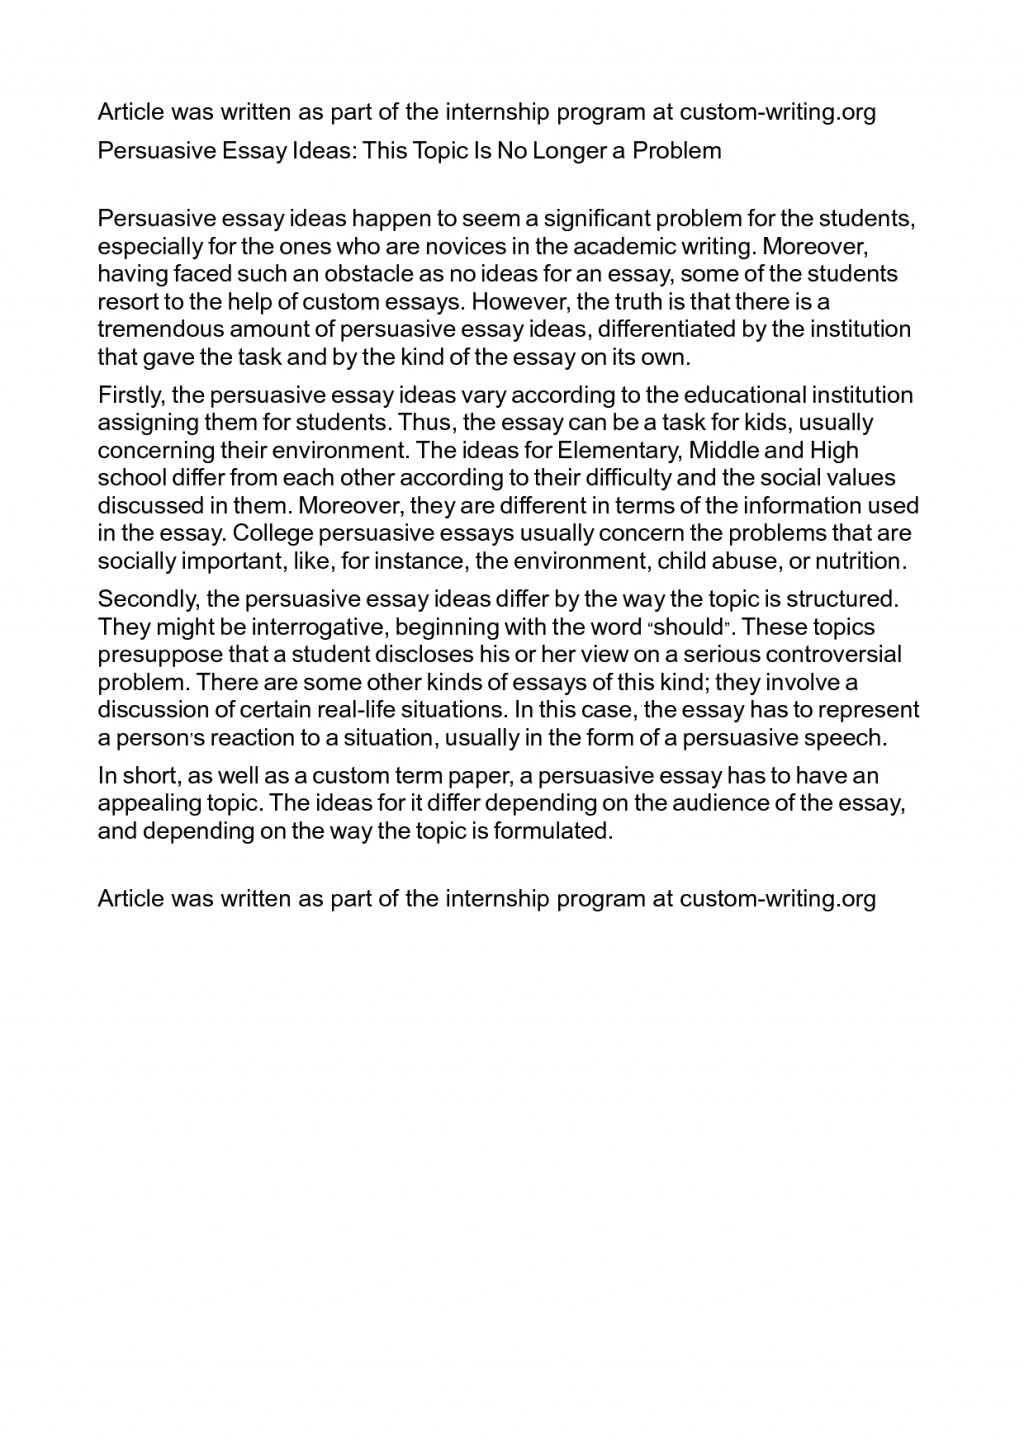 018 Essay Example Middle School Topics Persuasive 480361 Archaicawful Prompts Argumentative Funny For Large